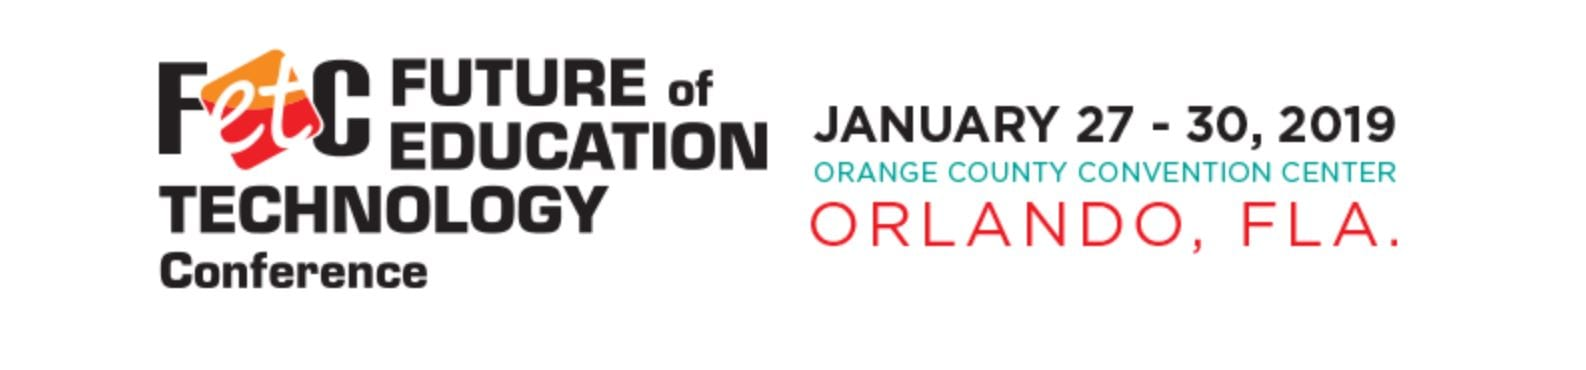 FETC educational conference logo